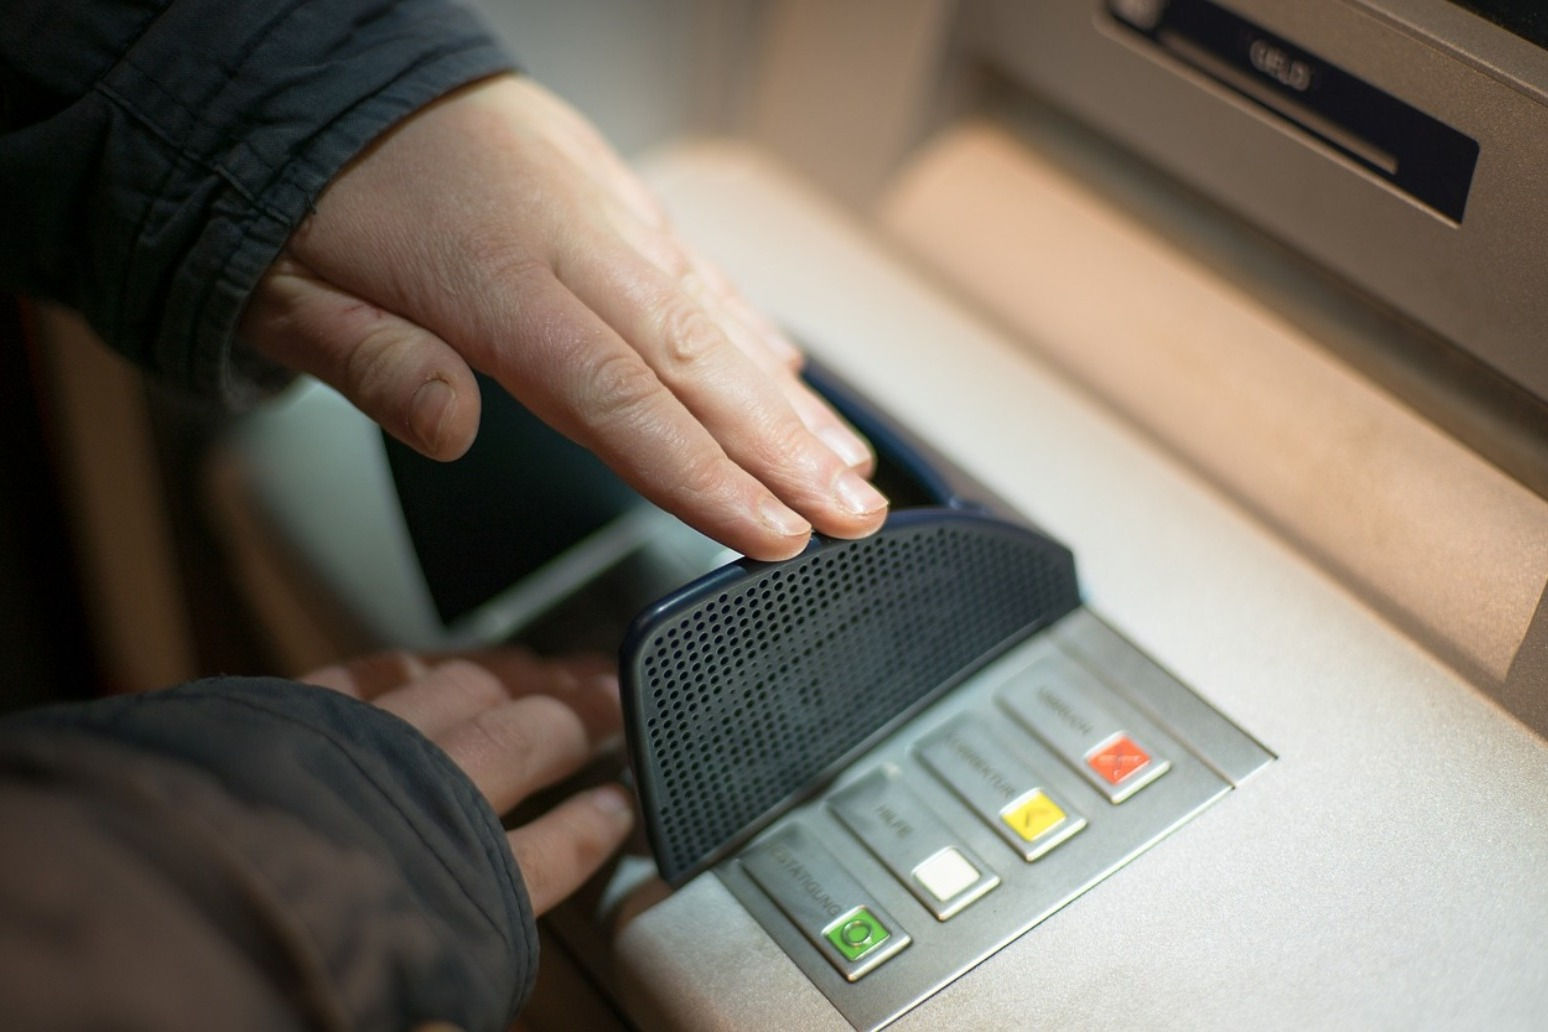 ATM use sees significant fall in use as people stay at home